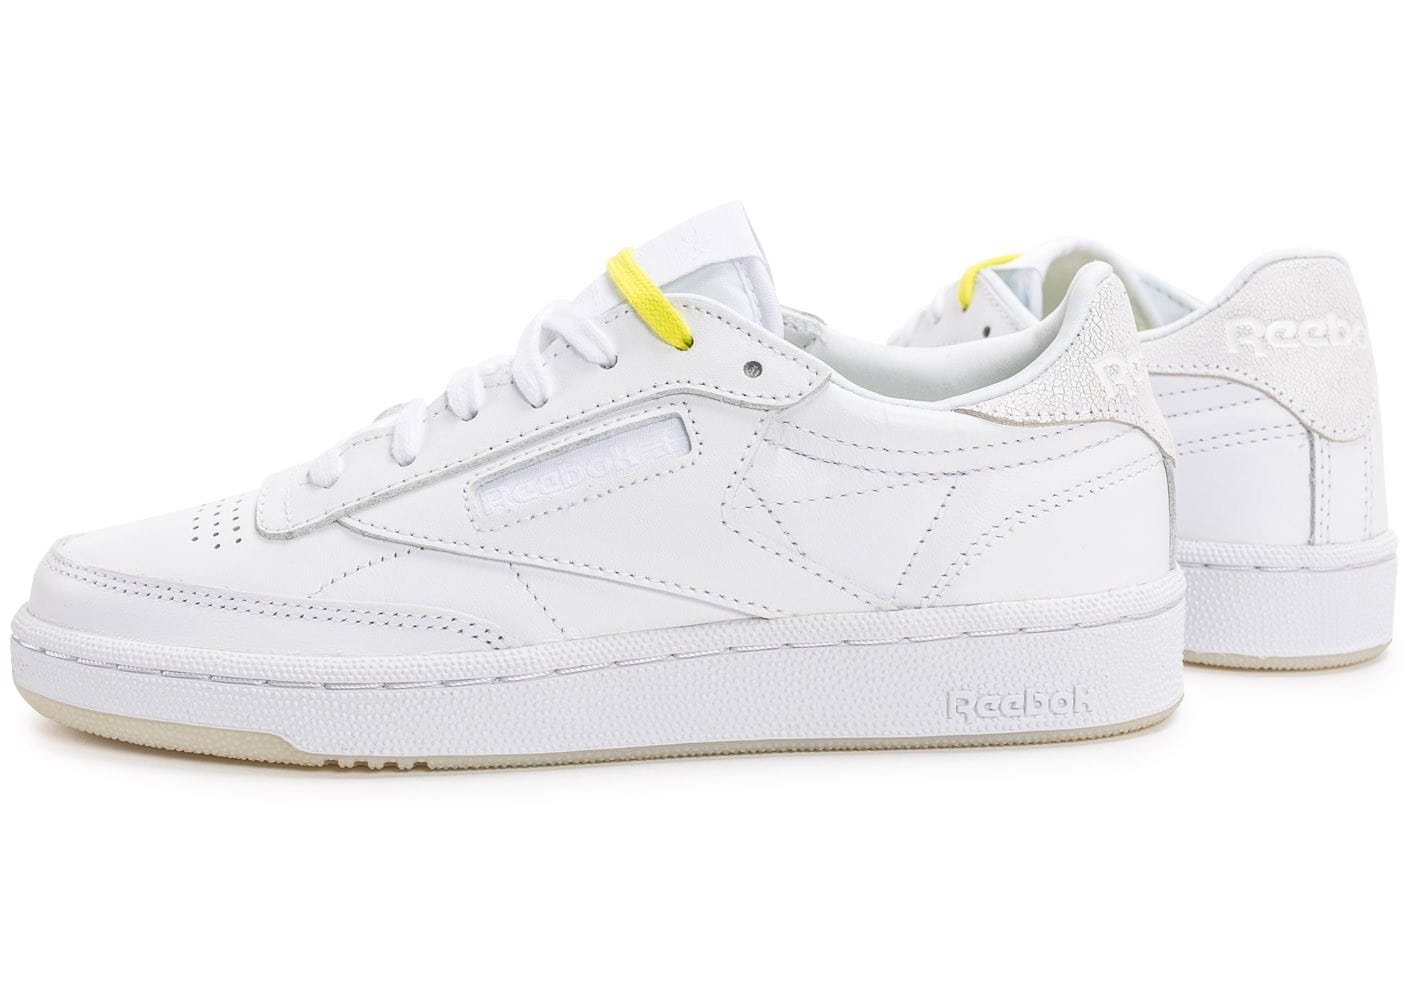 Reebok Club C 85 Face Stockholm Chaussures Baskets femme